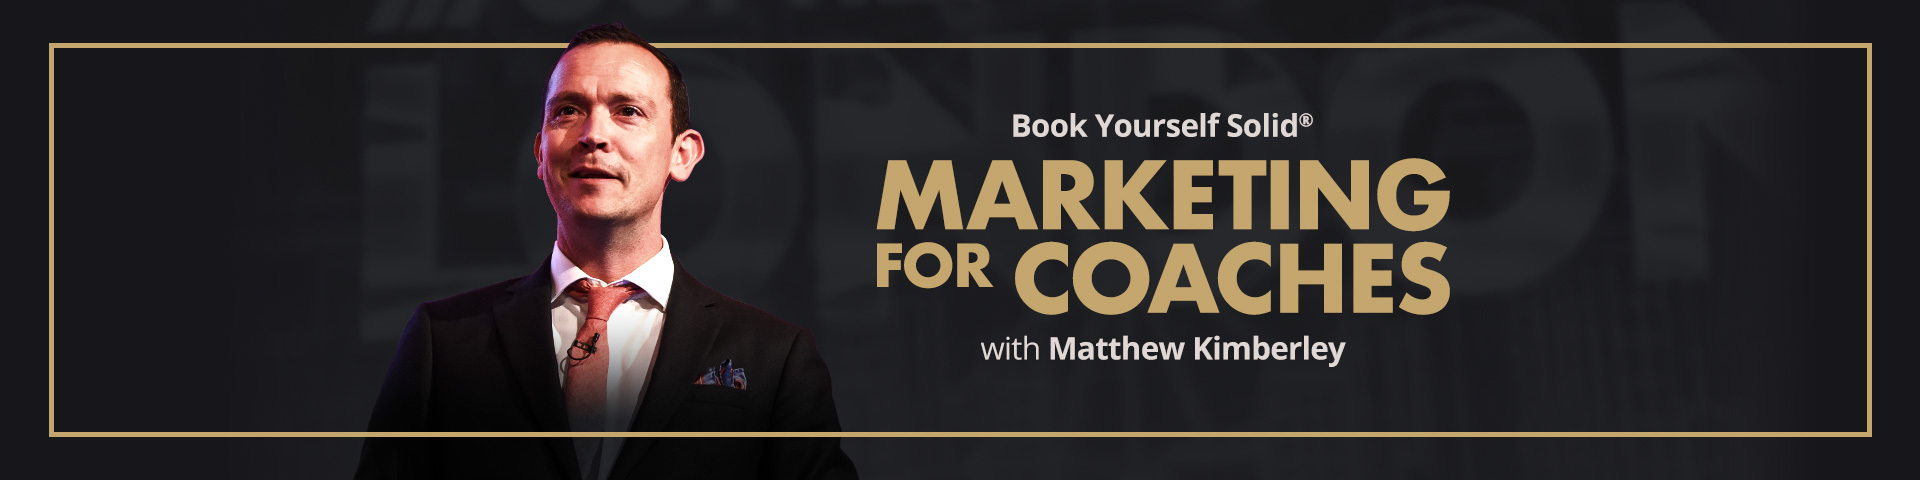 Marketing for Coaches from Matthew Kimberley